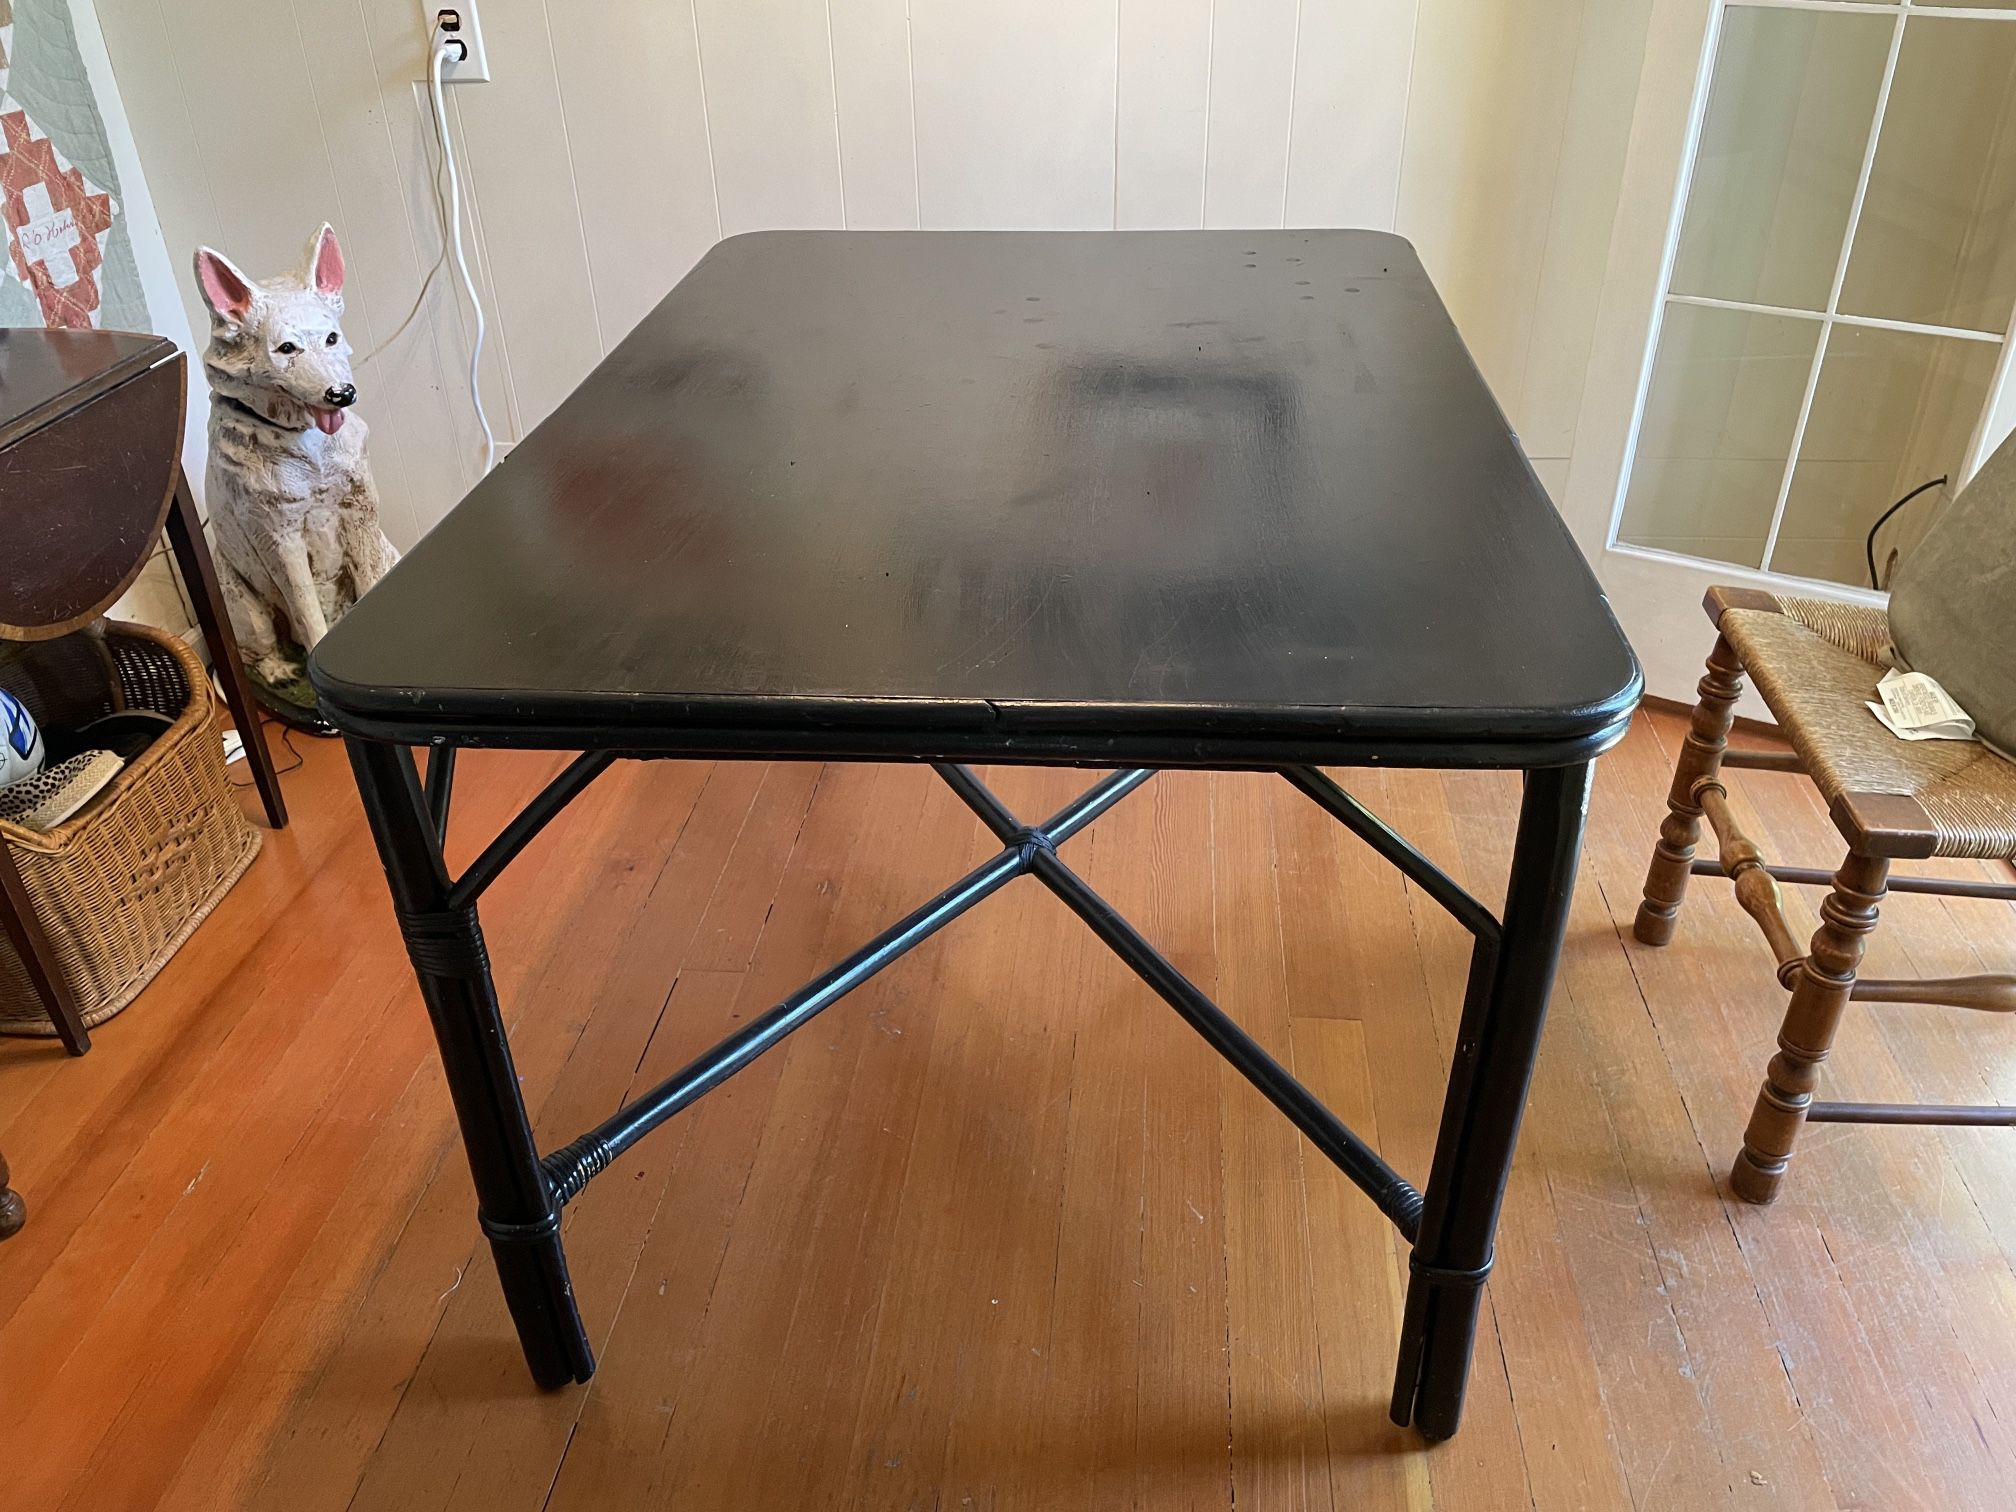 FOR SALE! 50's  black painted bamboo dining/kitchen table, seats 4-6, good condition  35w x 48l x 30h $60